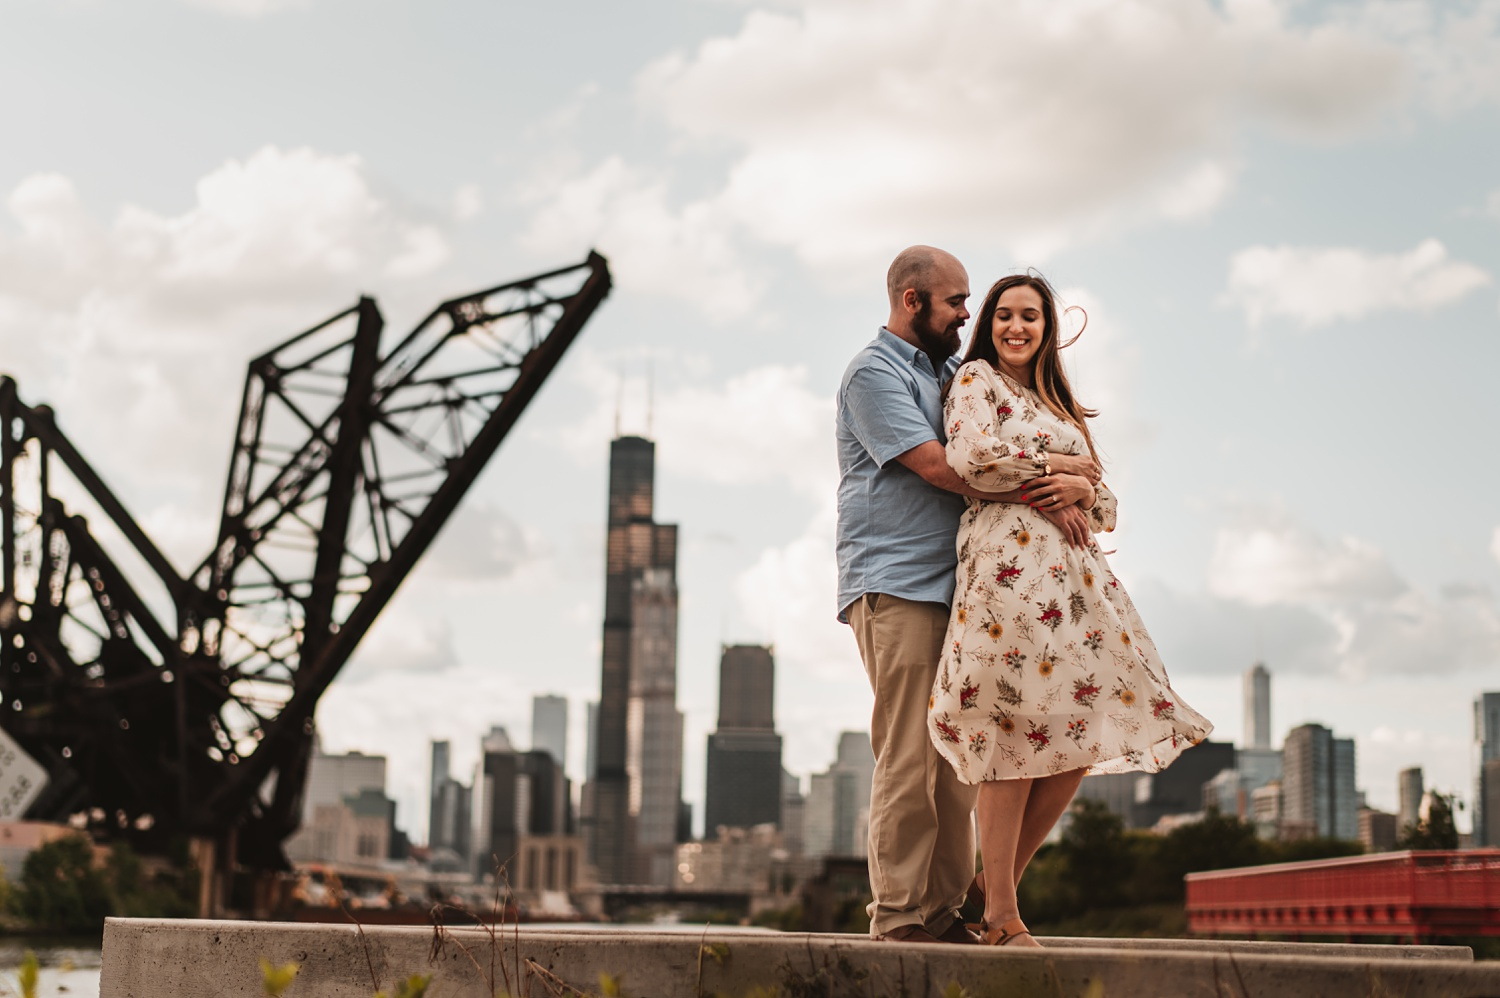 Ping Tom Park Chicago Engagement Session - The adamkovi Chicago Skyline